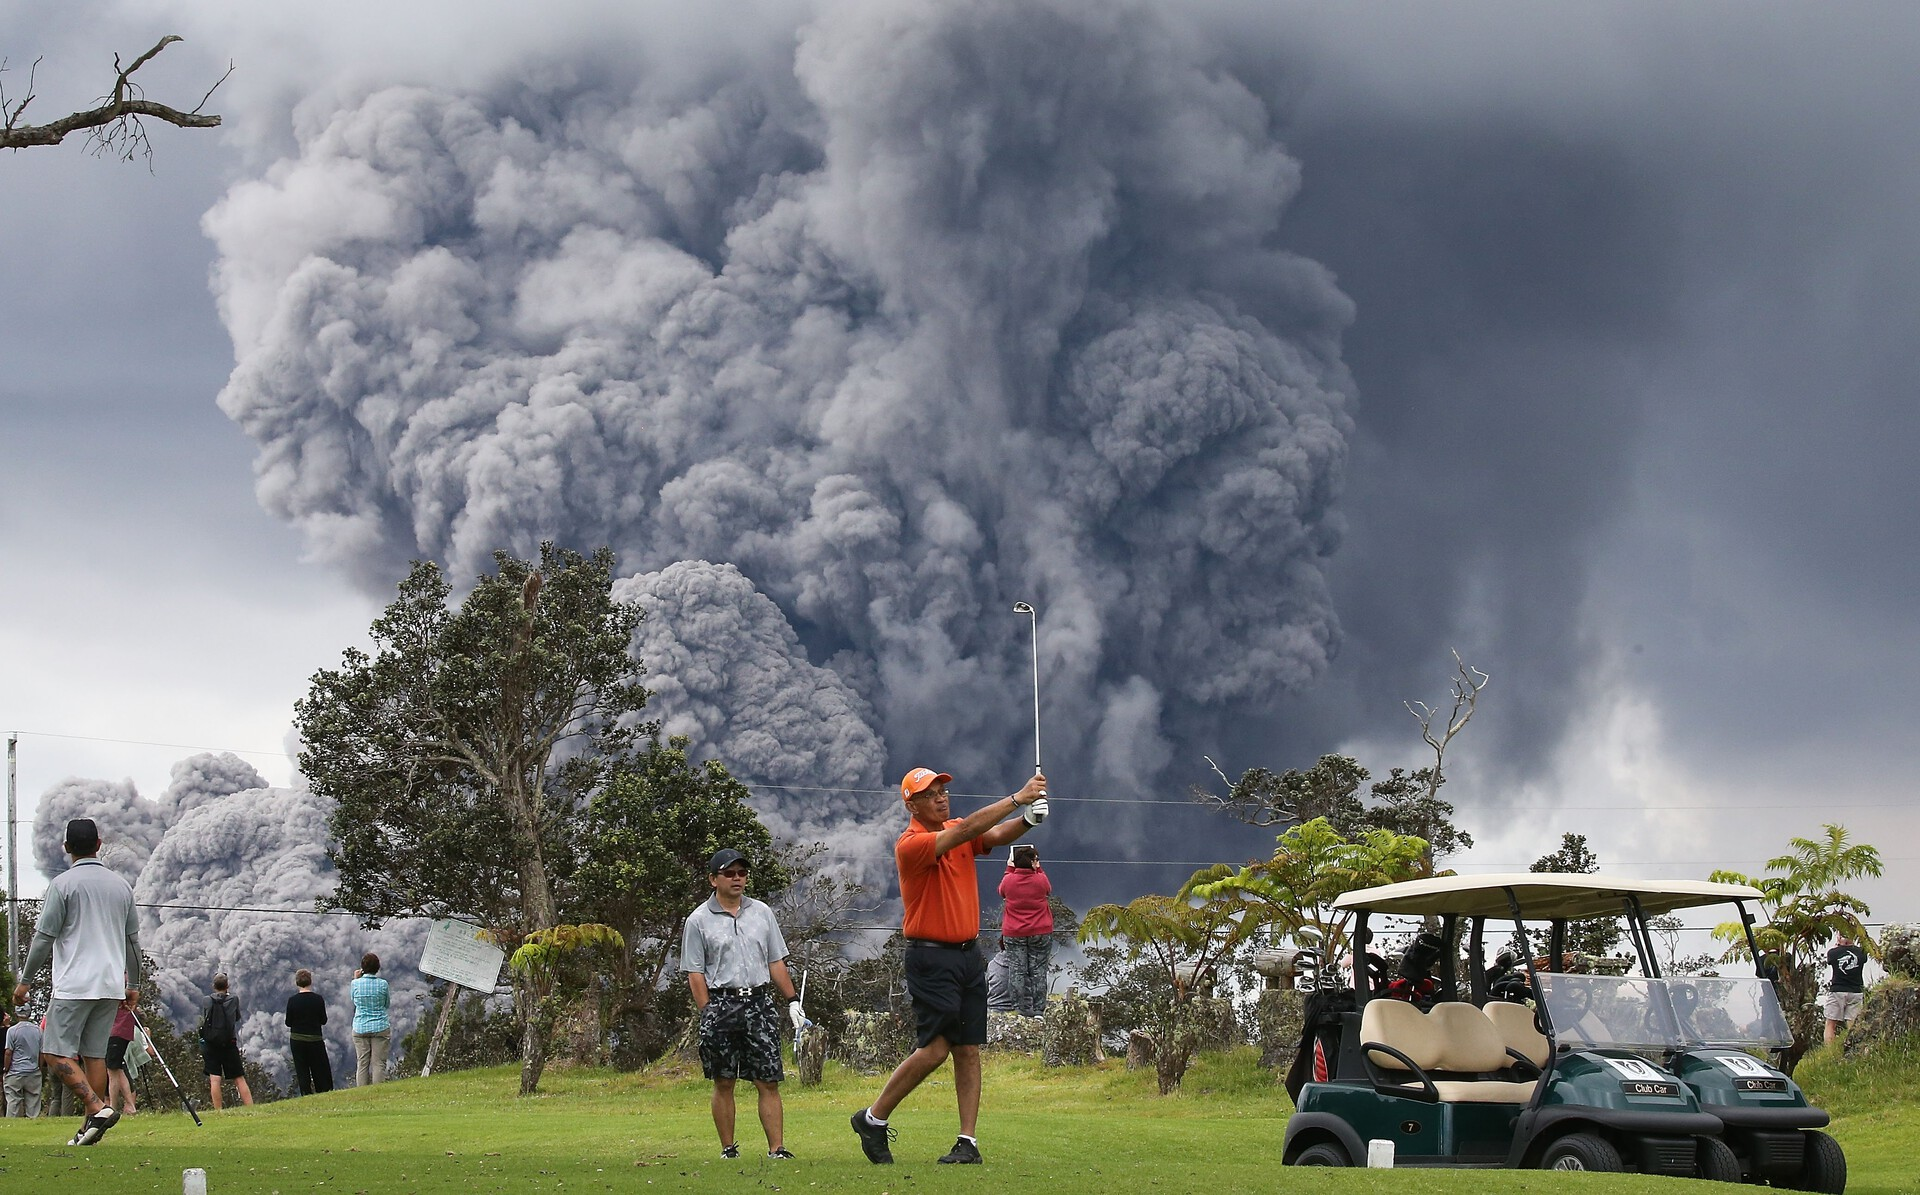 An ash plume from the Kilauea volcano rises in the distance behind golfers.